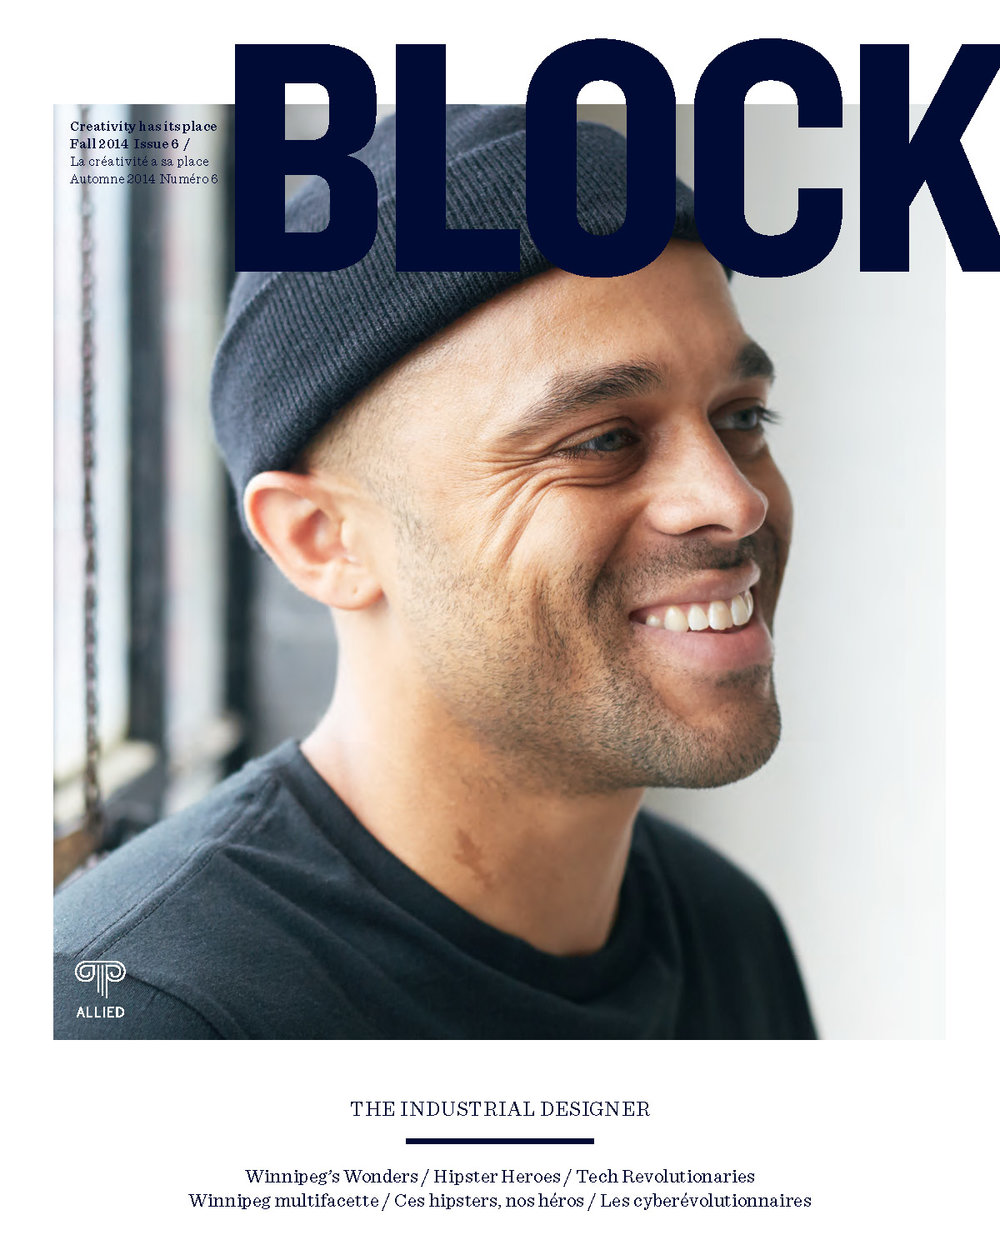 BLOCK : Editor of art and design quarterly produced by Whitman Emorson for Allied Properties